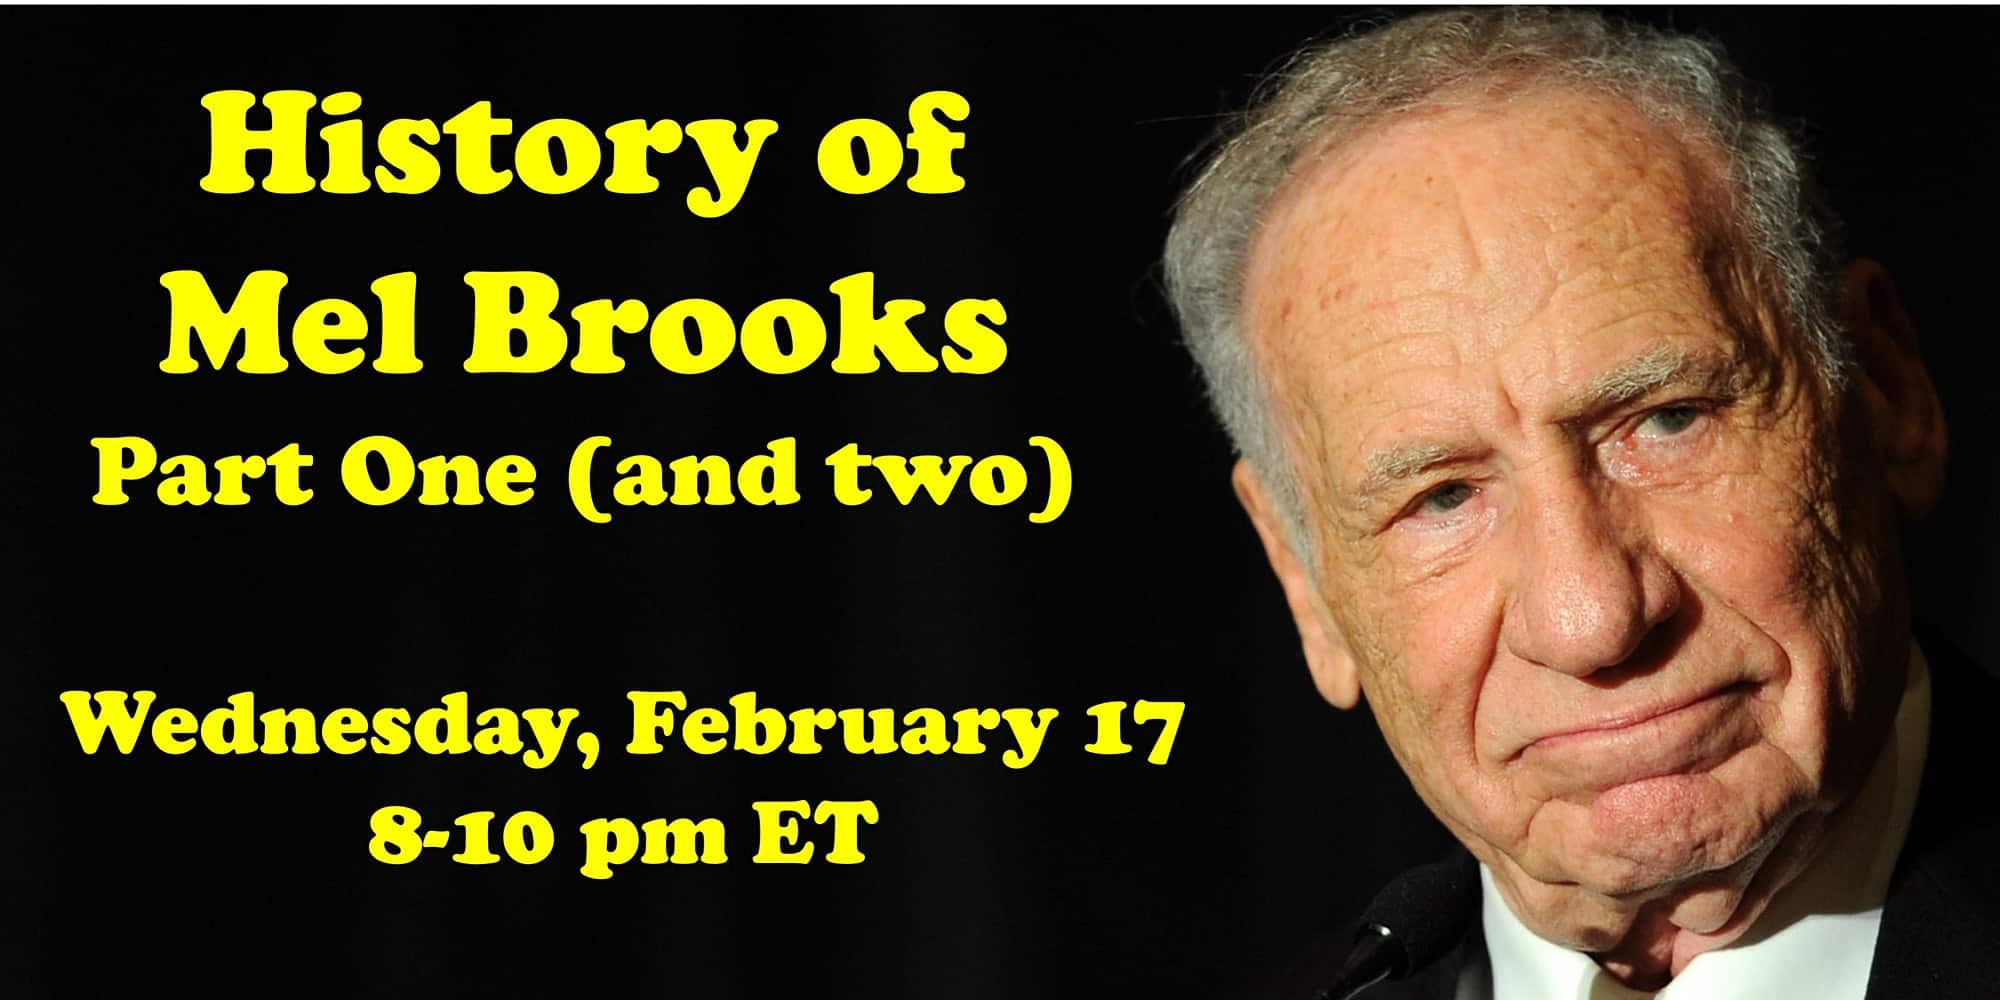 History of Mel Brooks, Parts One and Two